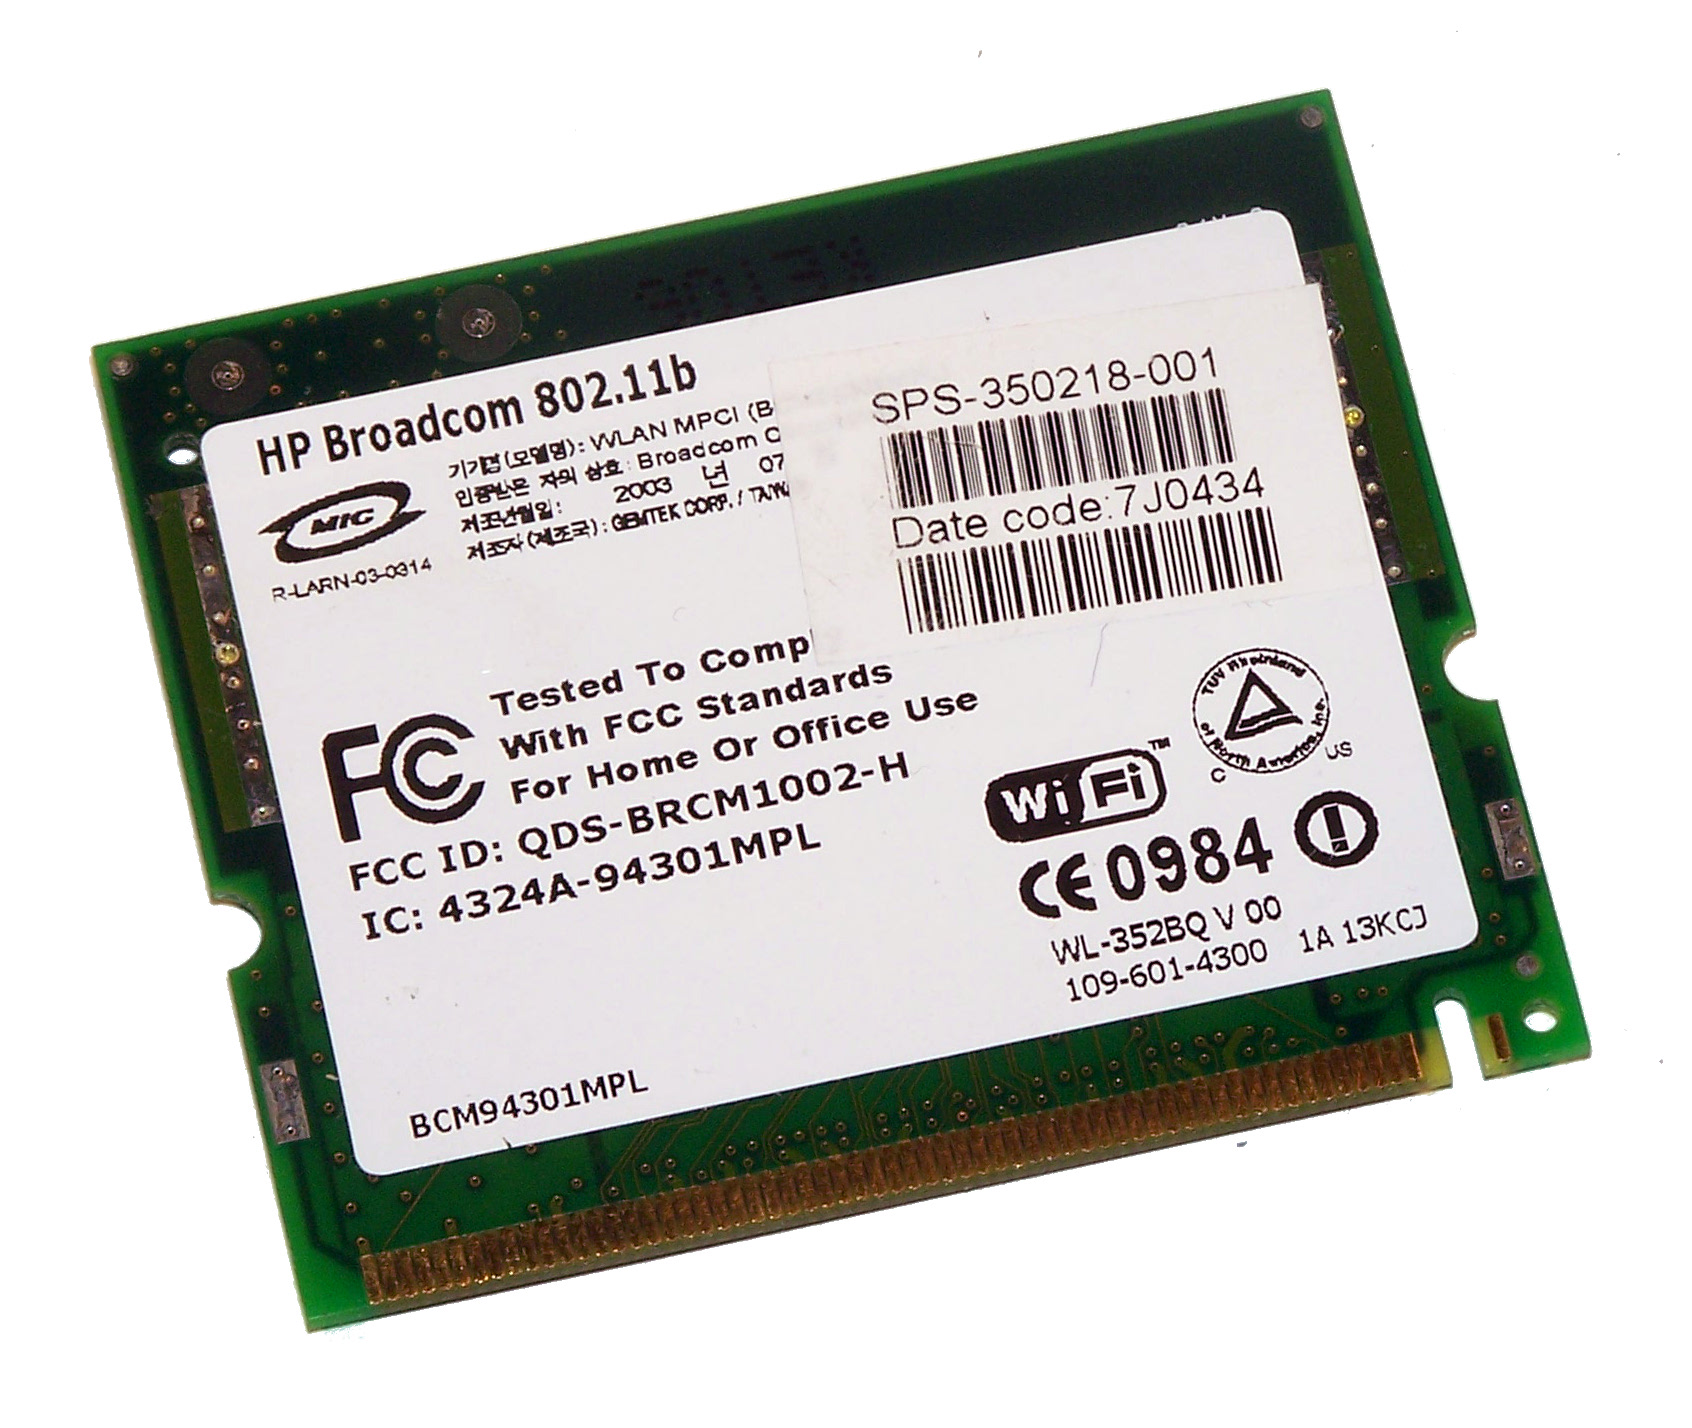 BCM94301MPL DRIVERS FOR WINDOWS XP